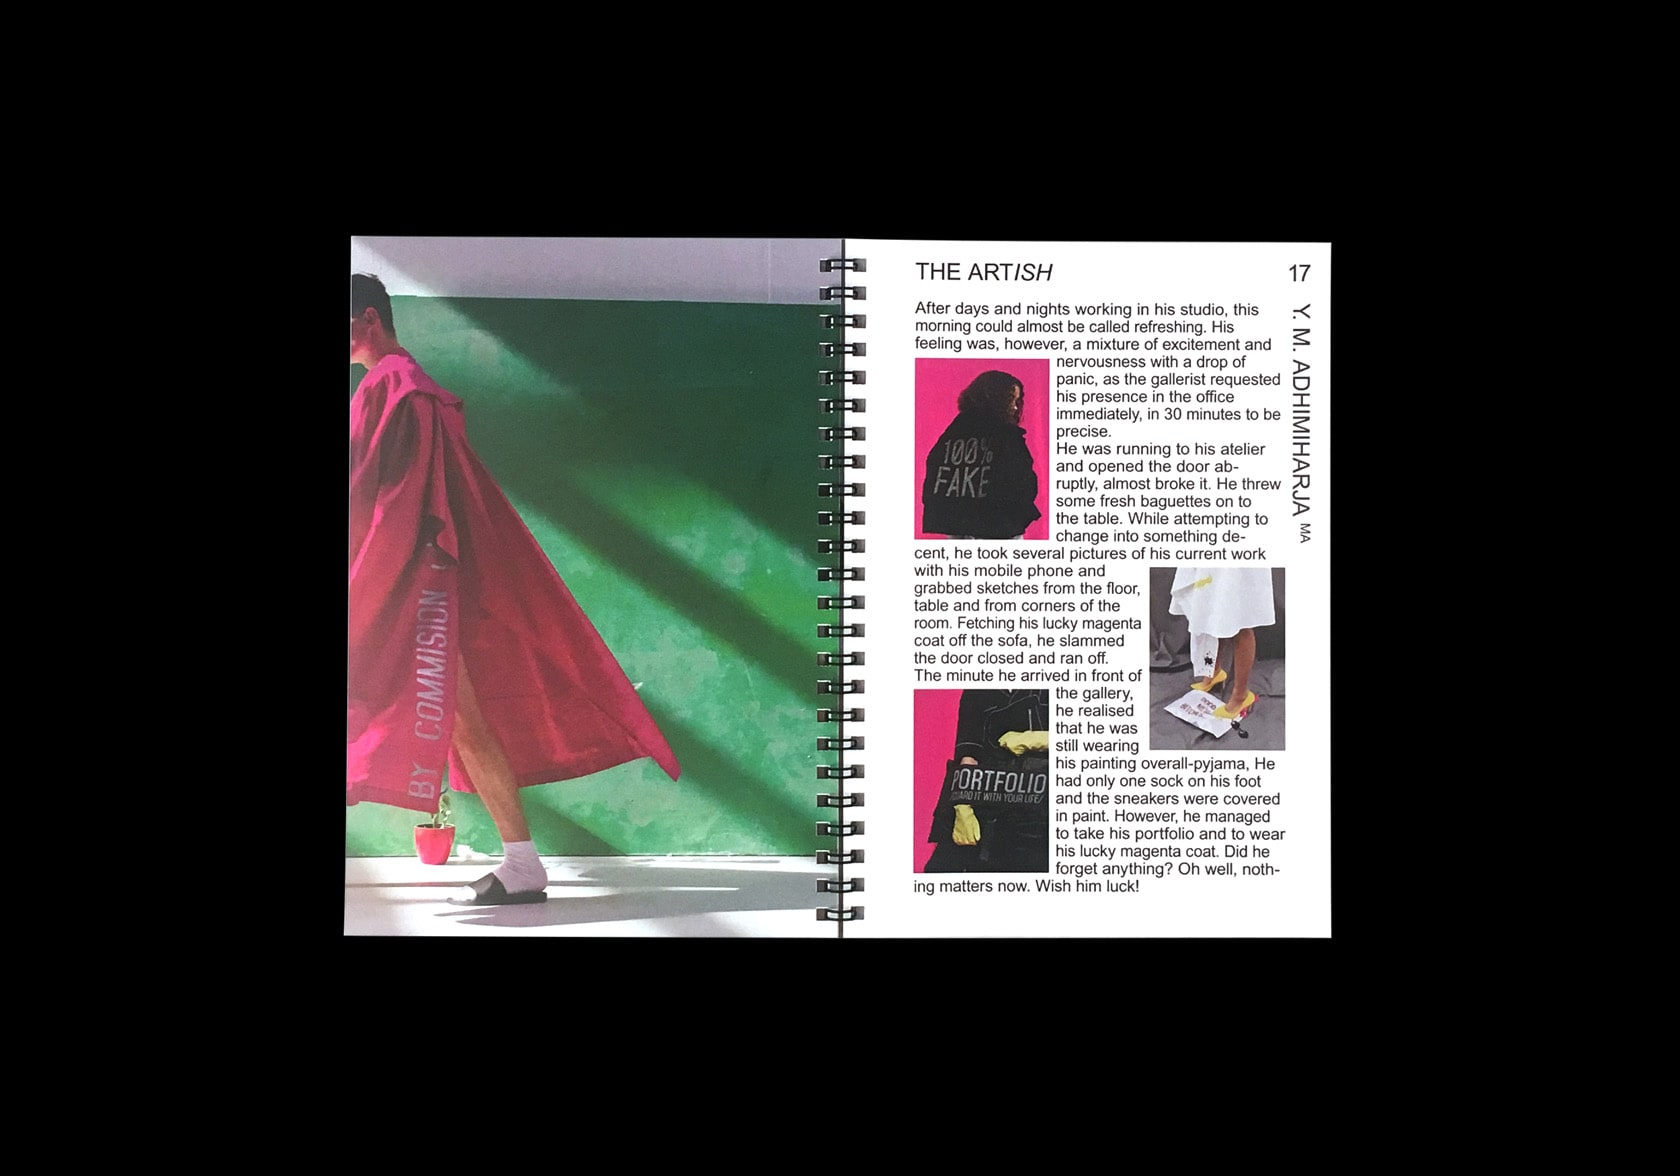 Photo of an opened Catalogue for the Kunsthochschule Weissensee Fashion dpt.